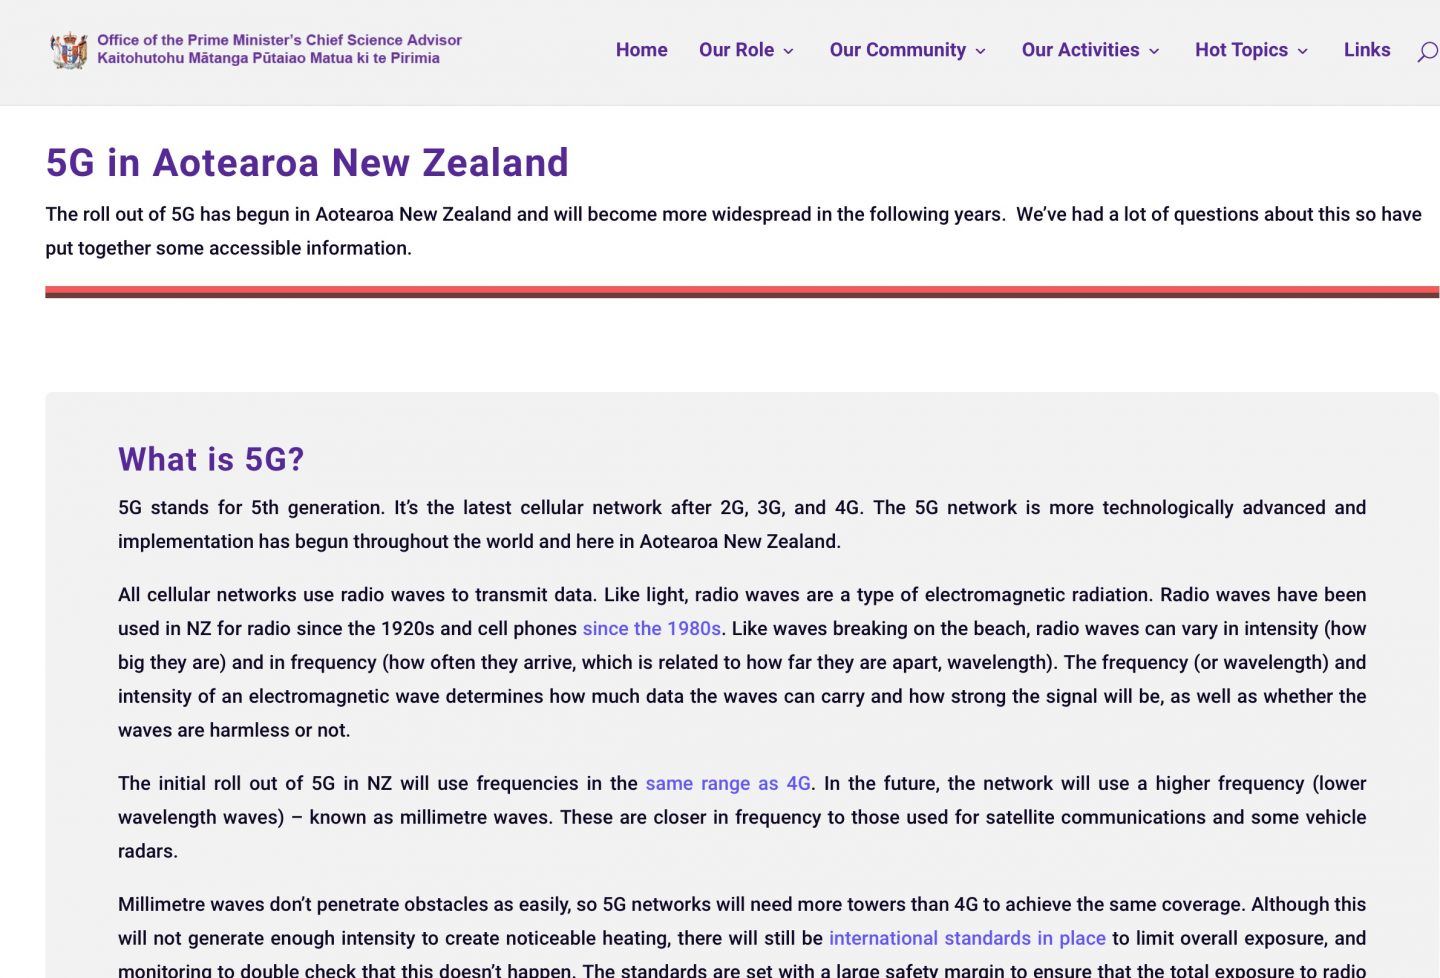 chief science advisor 5G site